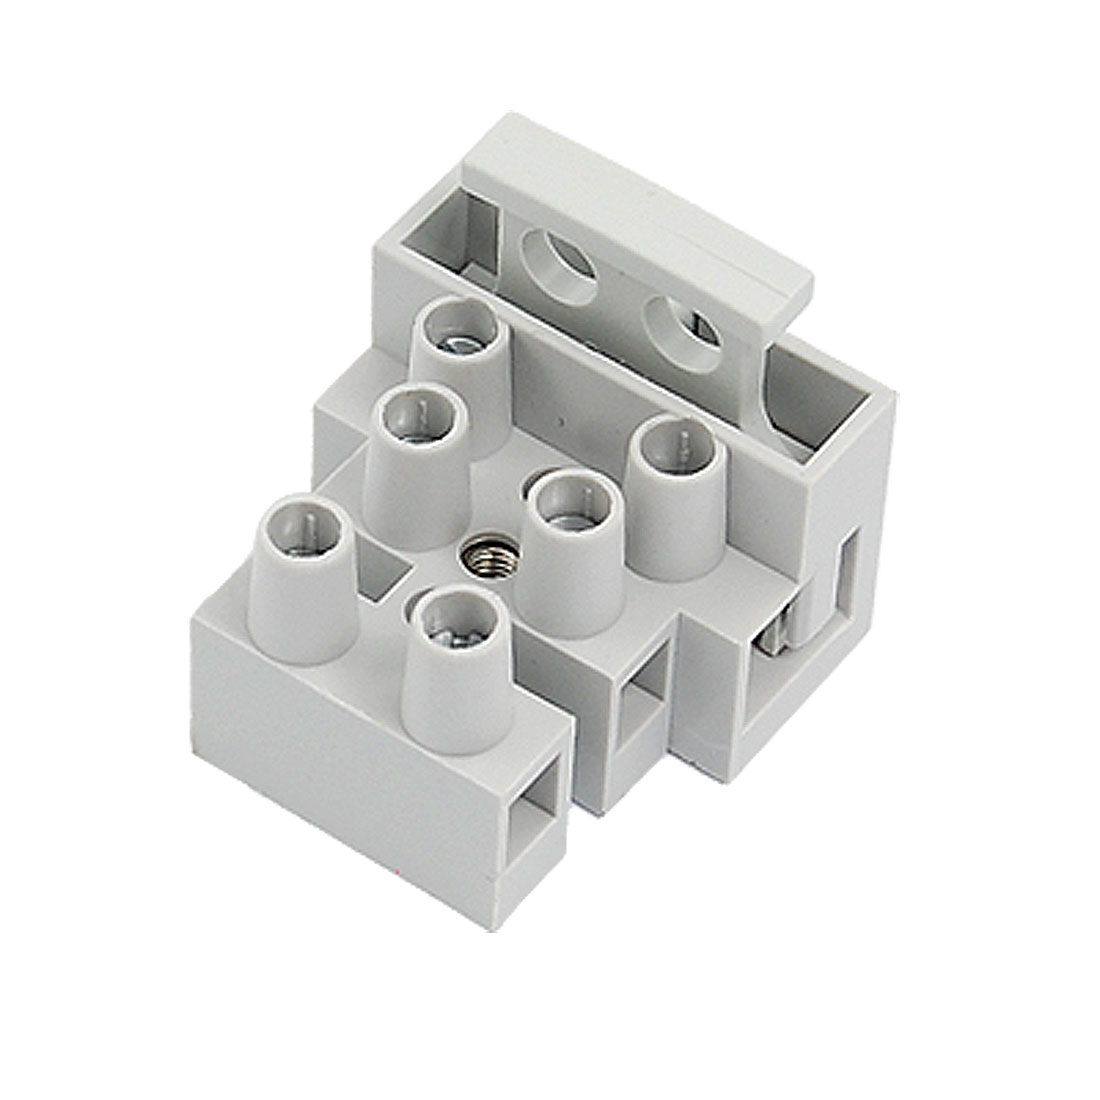 10 Pcs 3 Pole 10mm Pitch Fuse Terminal Block Connector Gray